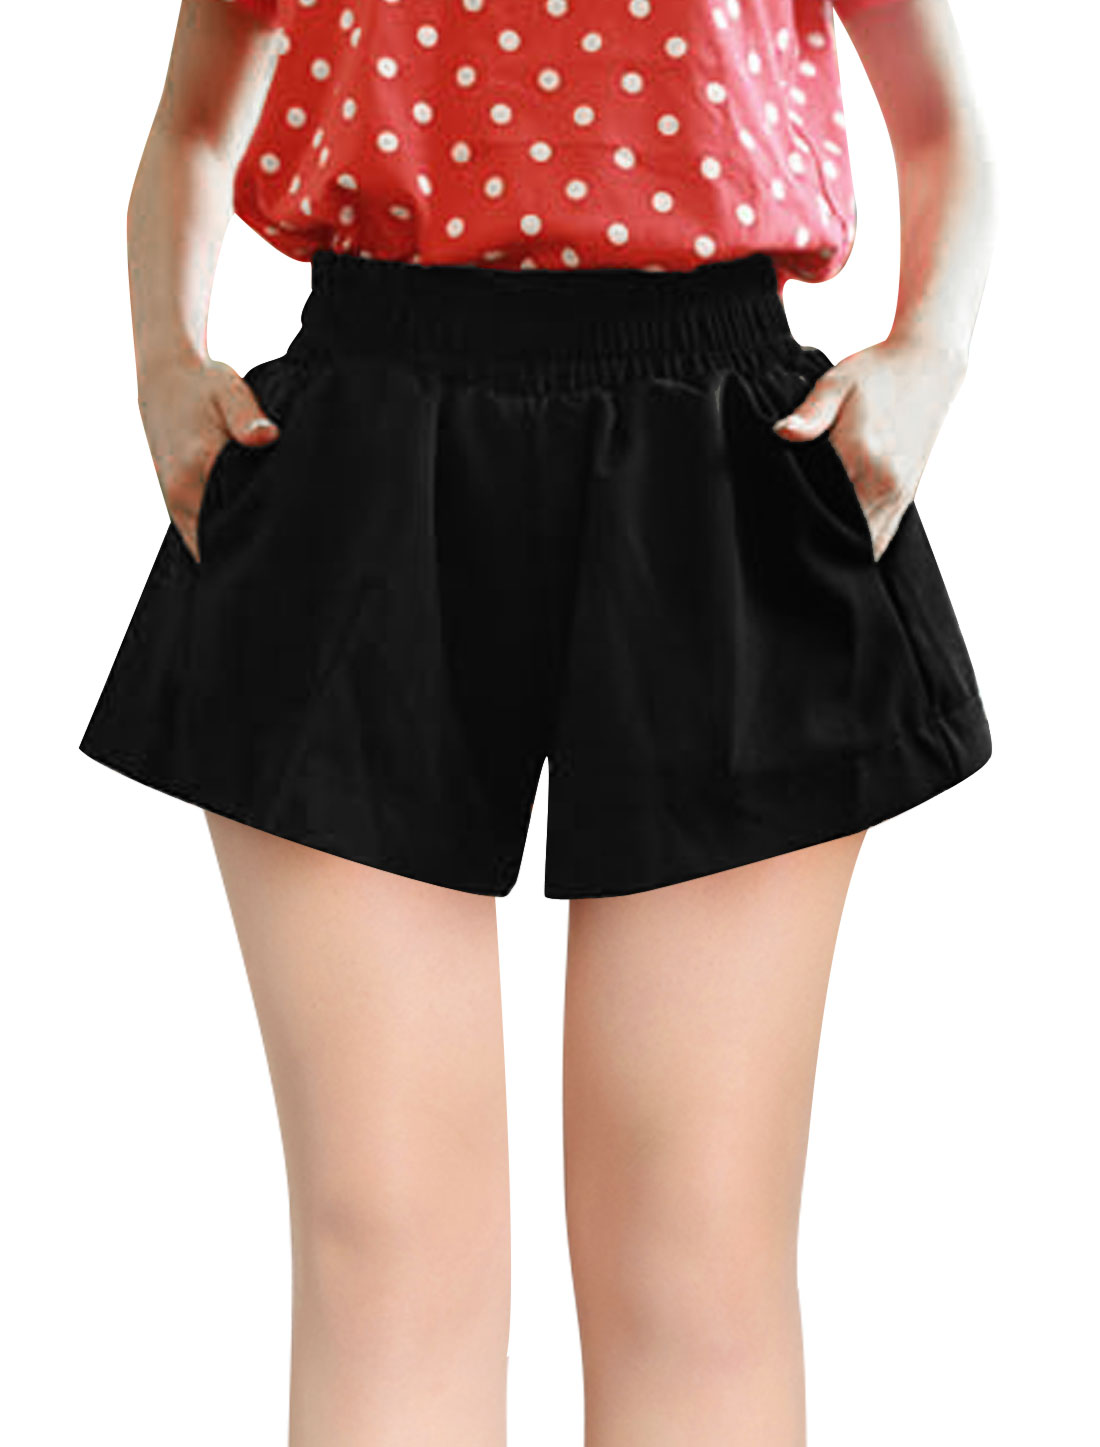 Lady Elastic Smocked Waist Lining Shorts Black S